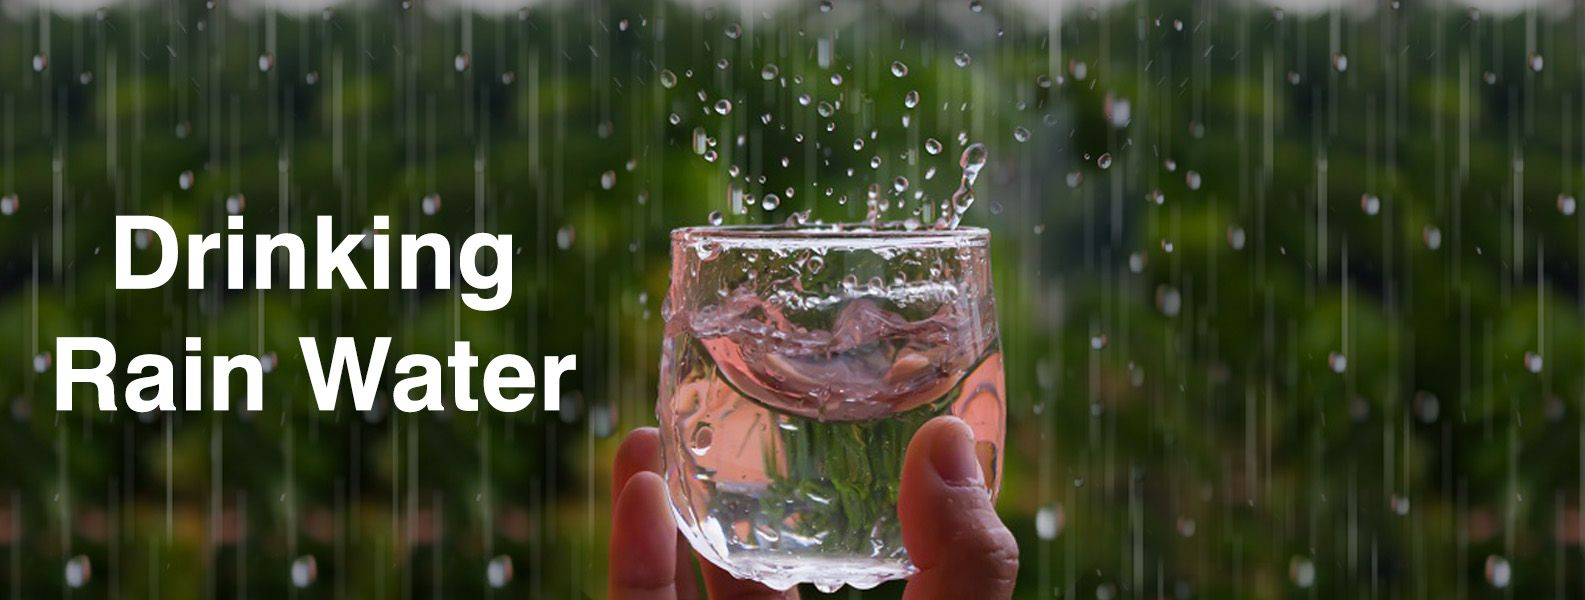 DRINKING RAIN WATER – HEALTH ADVANTAGES AND DISADVANTAGES